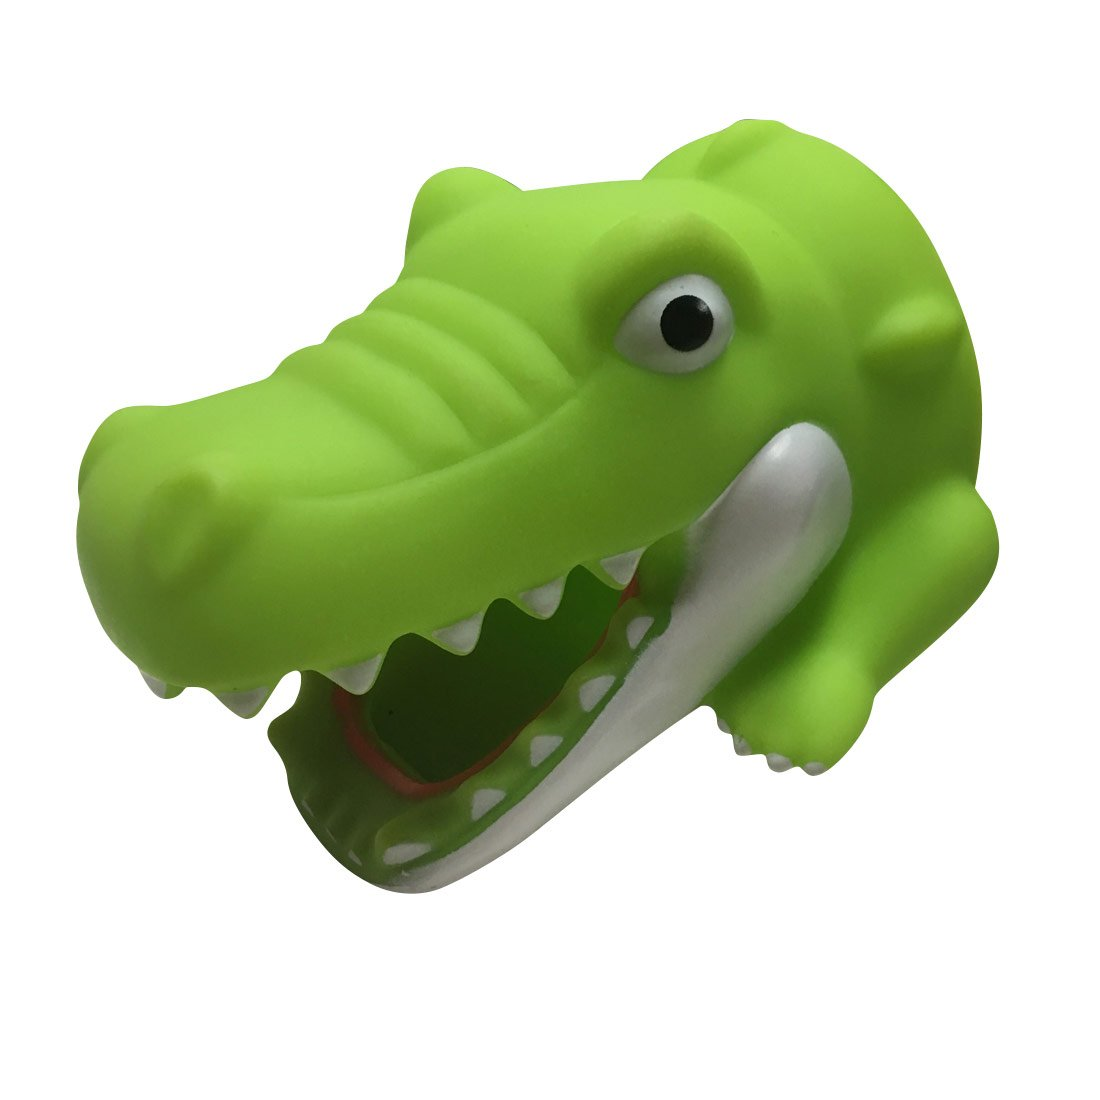 TBW Crocodile Cute Character Faucet Extender Hand Washing Extender Protector for Kids by TBW